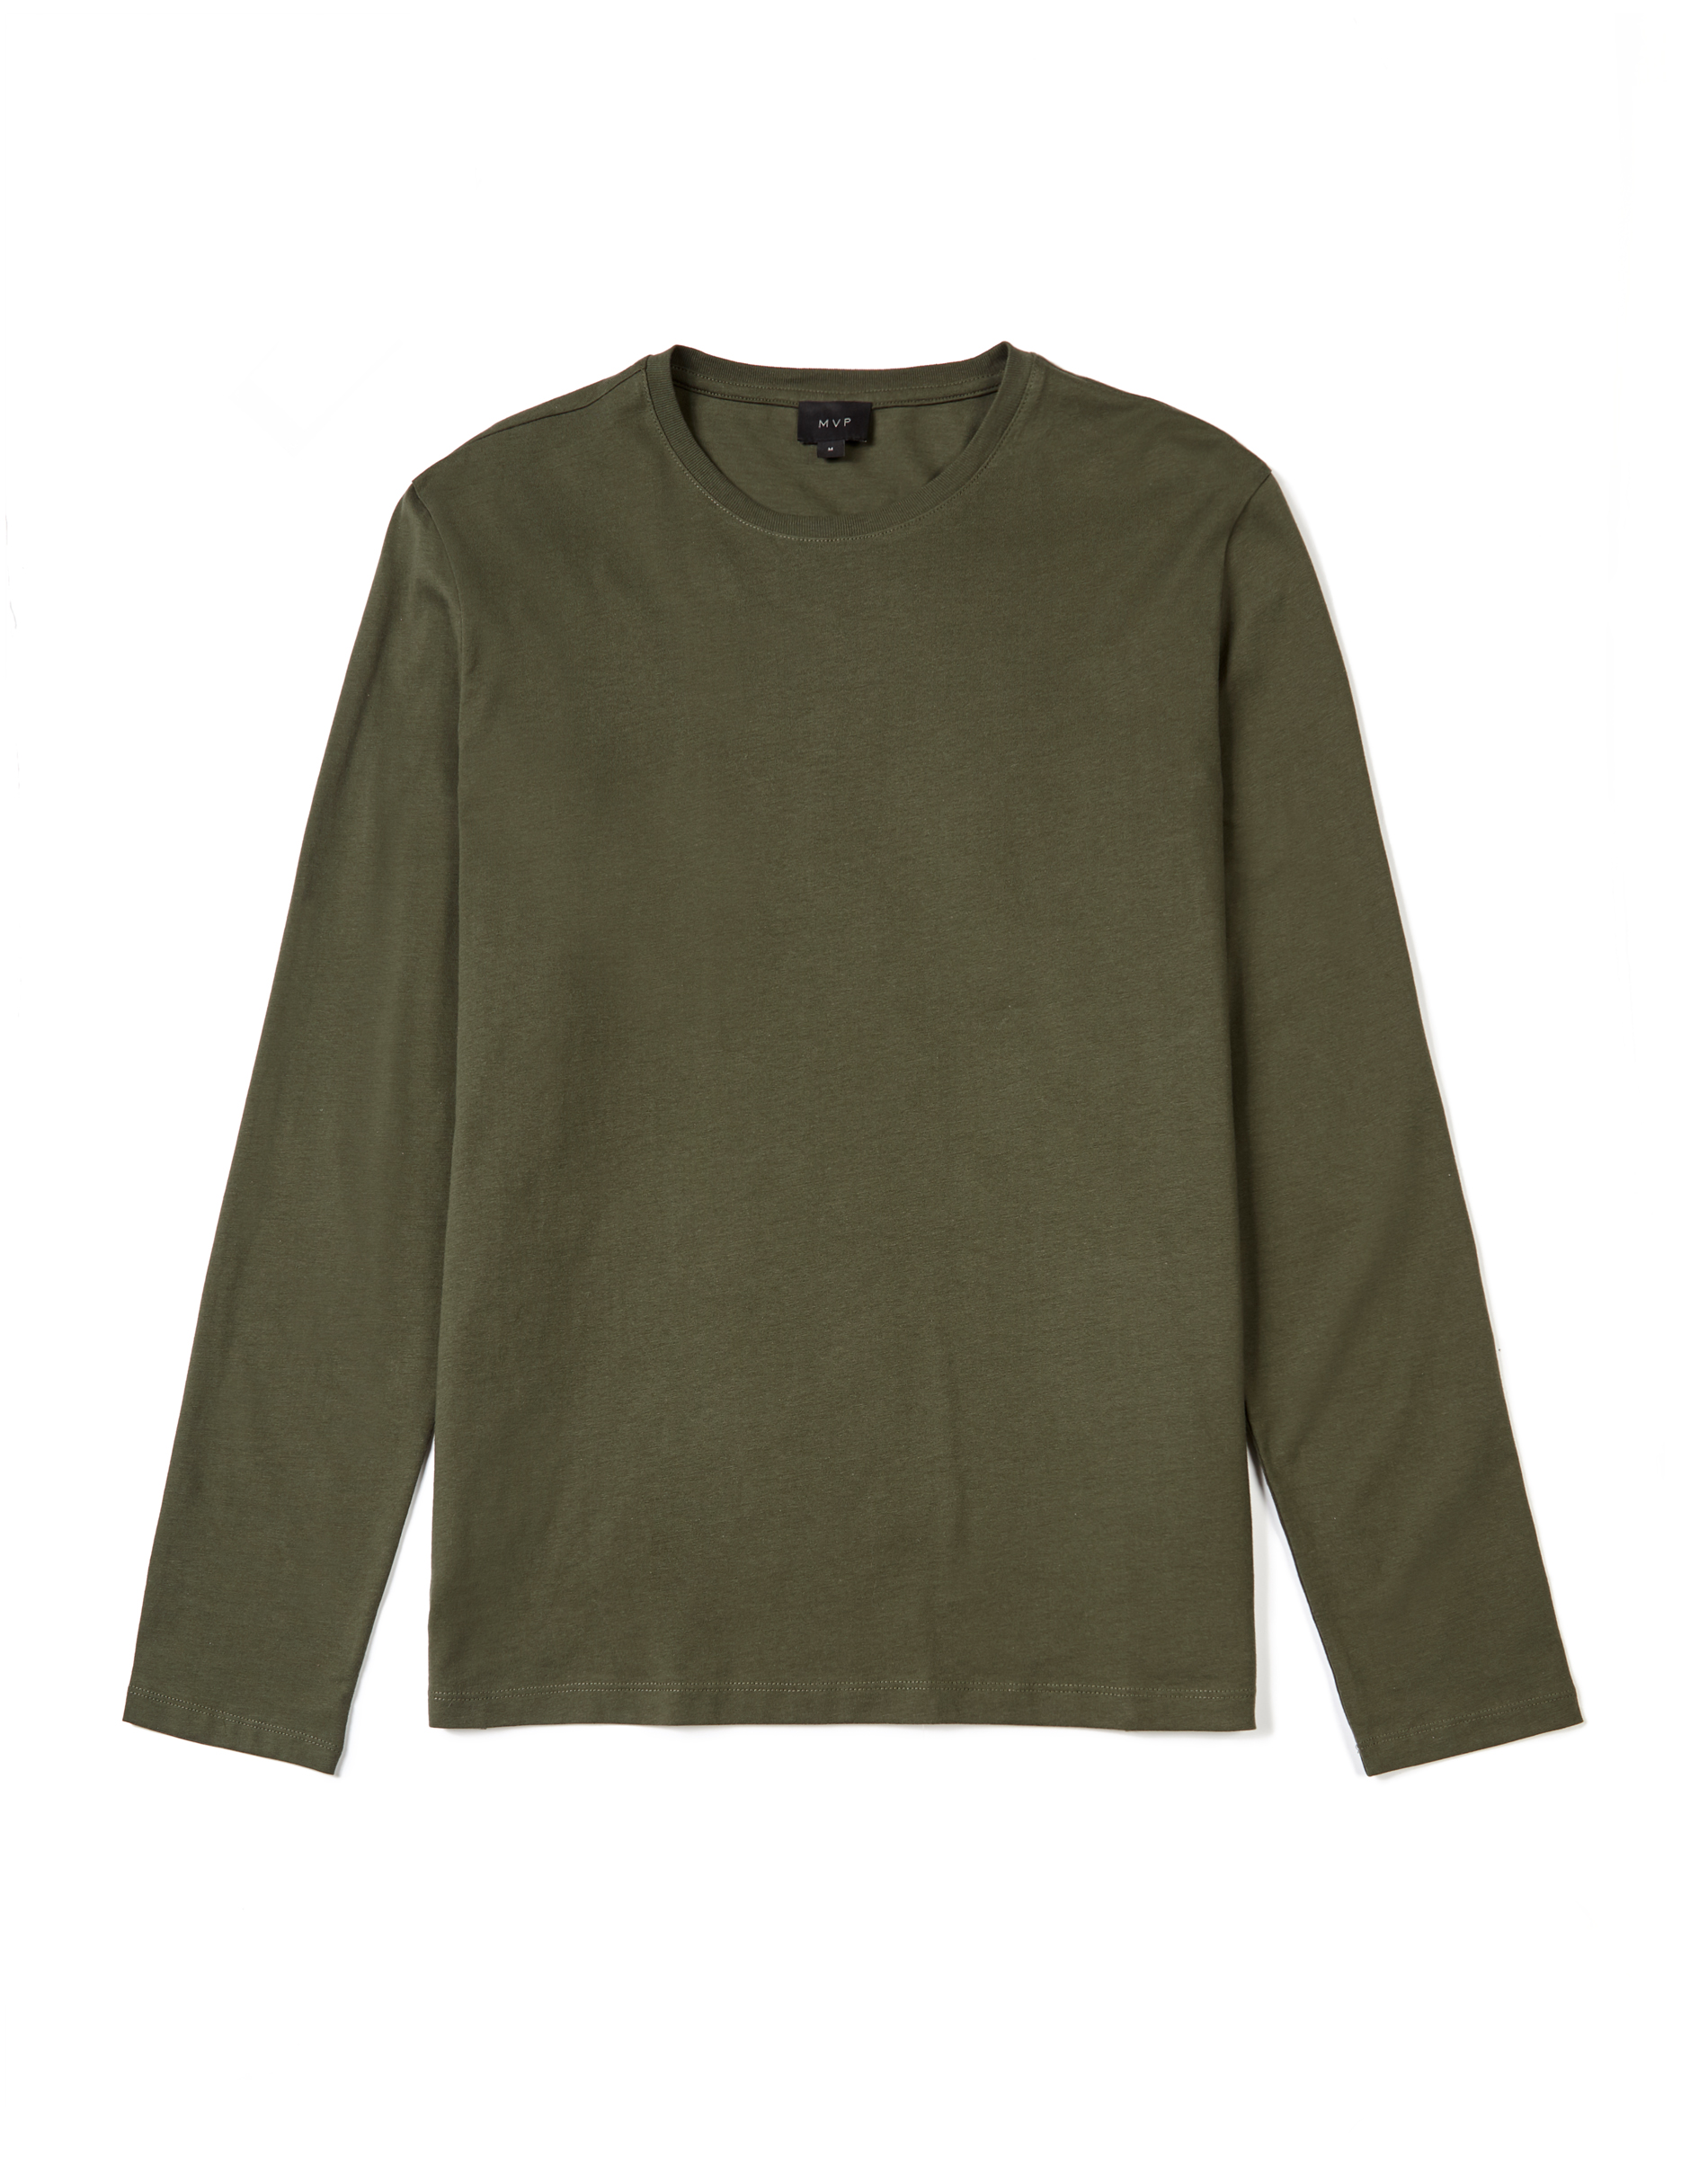 MVP MOSS GREEN Ashfield Long Sleeve Crew Neck T-shirt